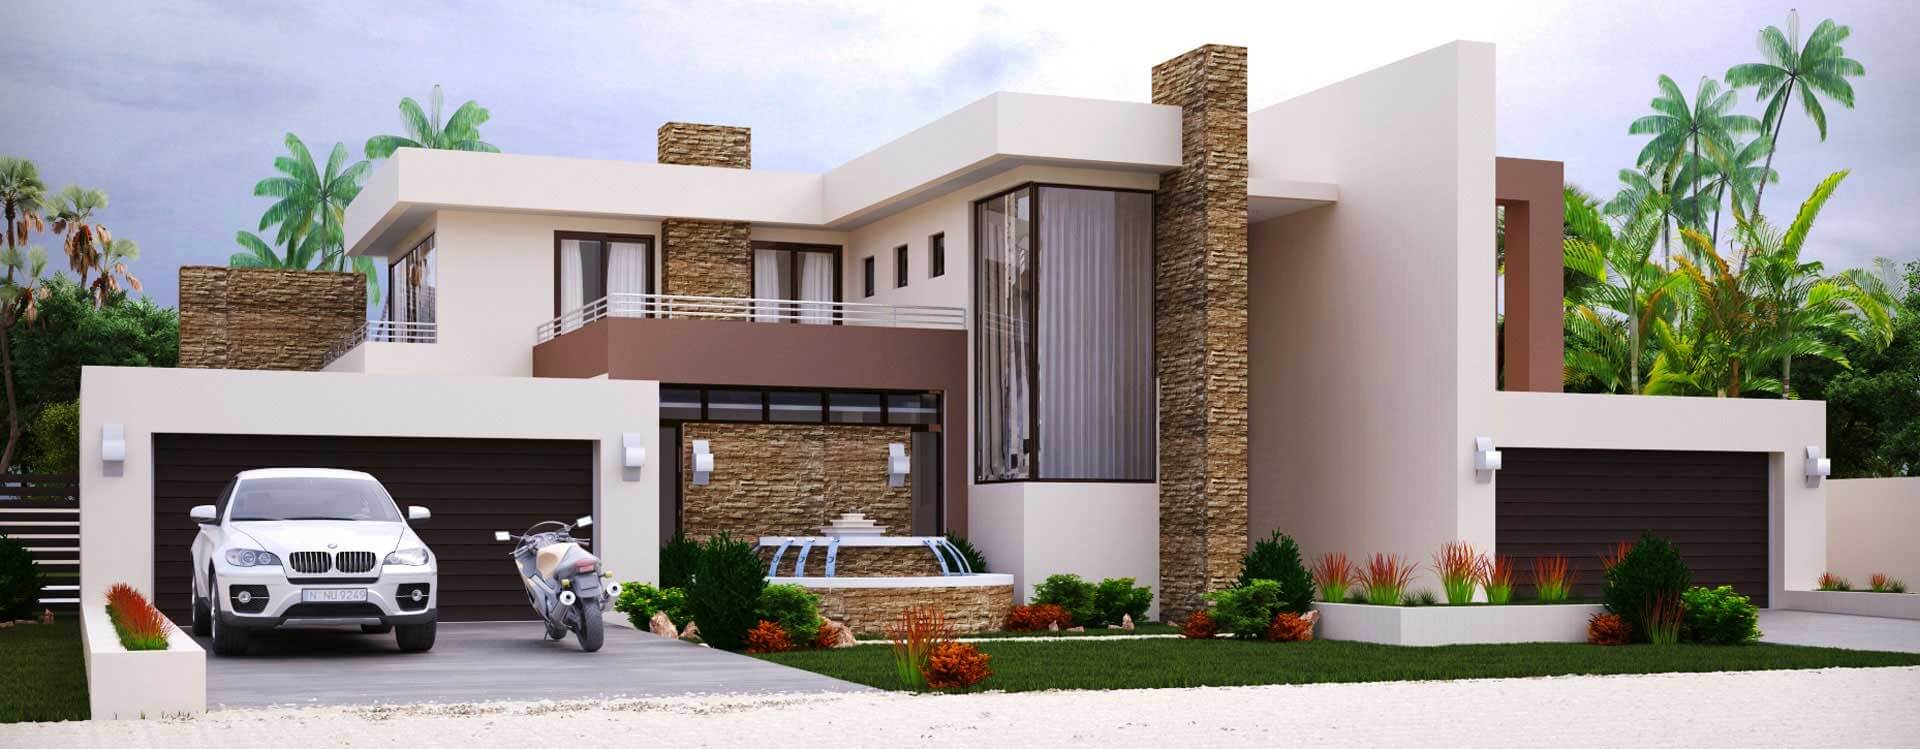 Good Modern Style House Plan, 4 Bedroom, Double Storey Floor Plans, Home Design,